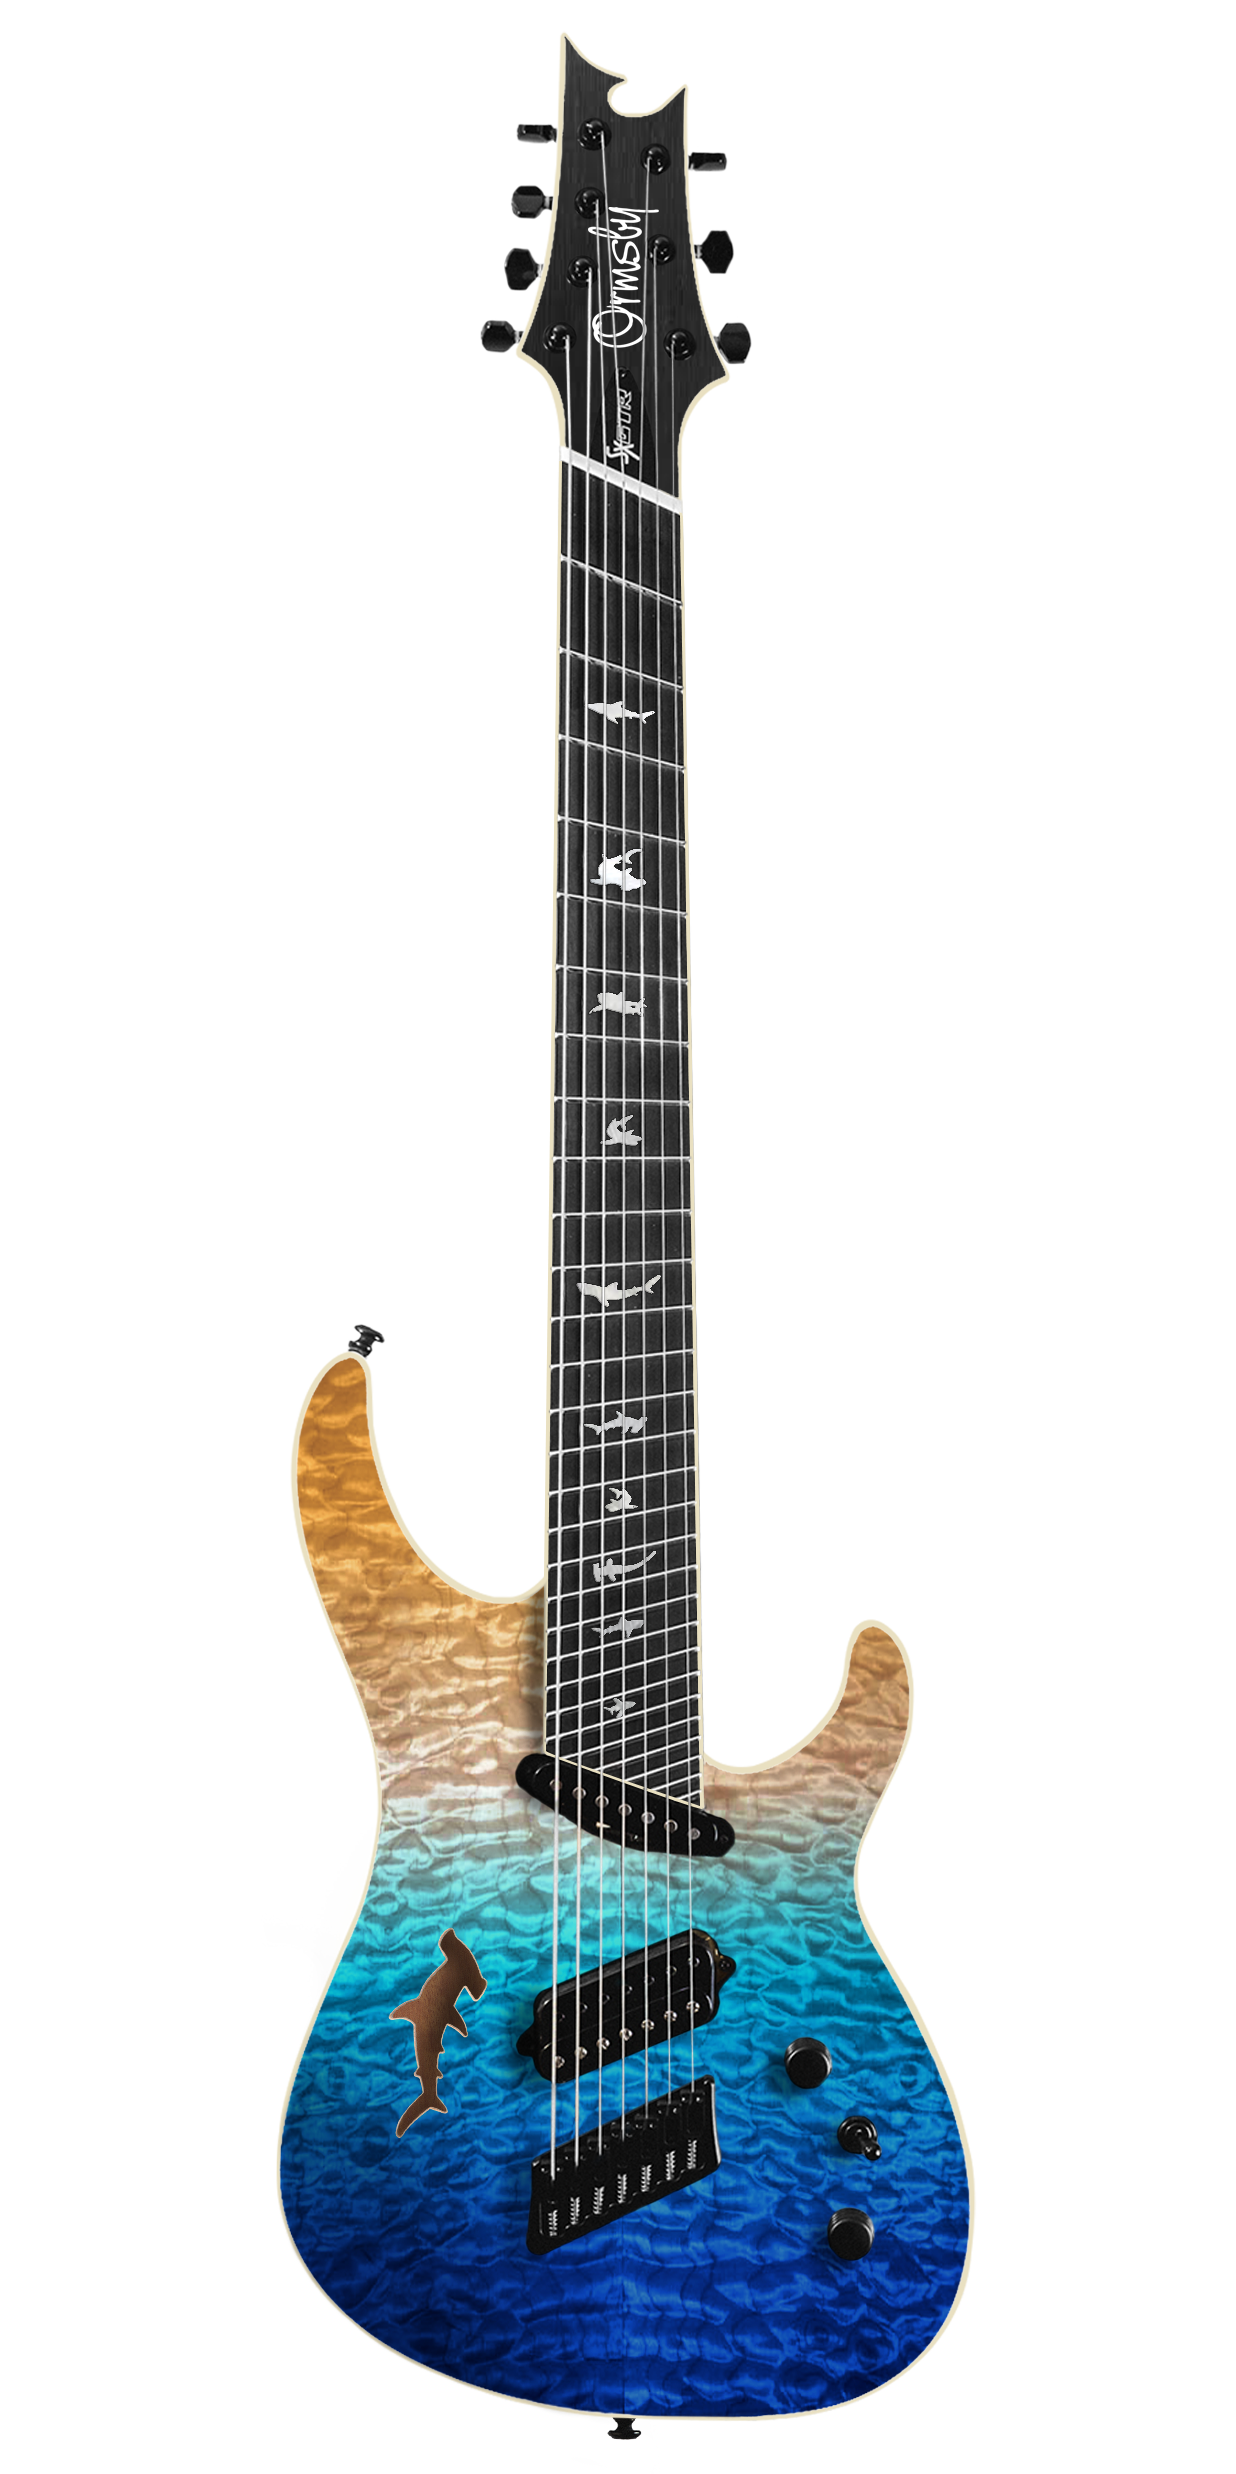 SX Shark GTR Limited Edition 2017 - Ocean Dream (6, 7 & 8 String)